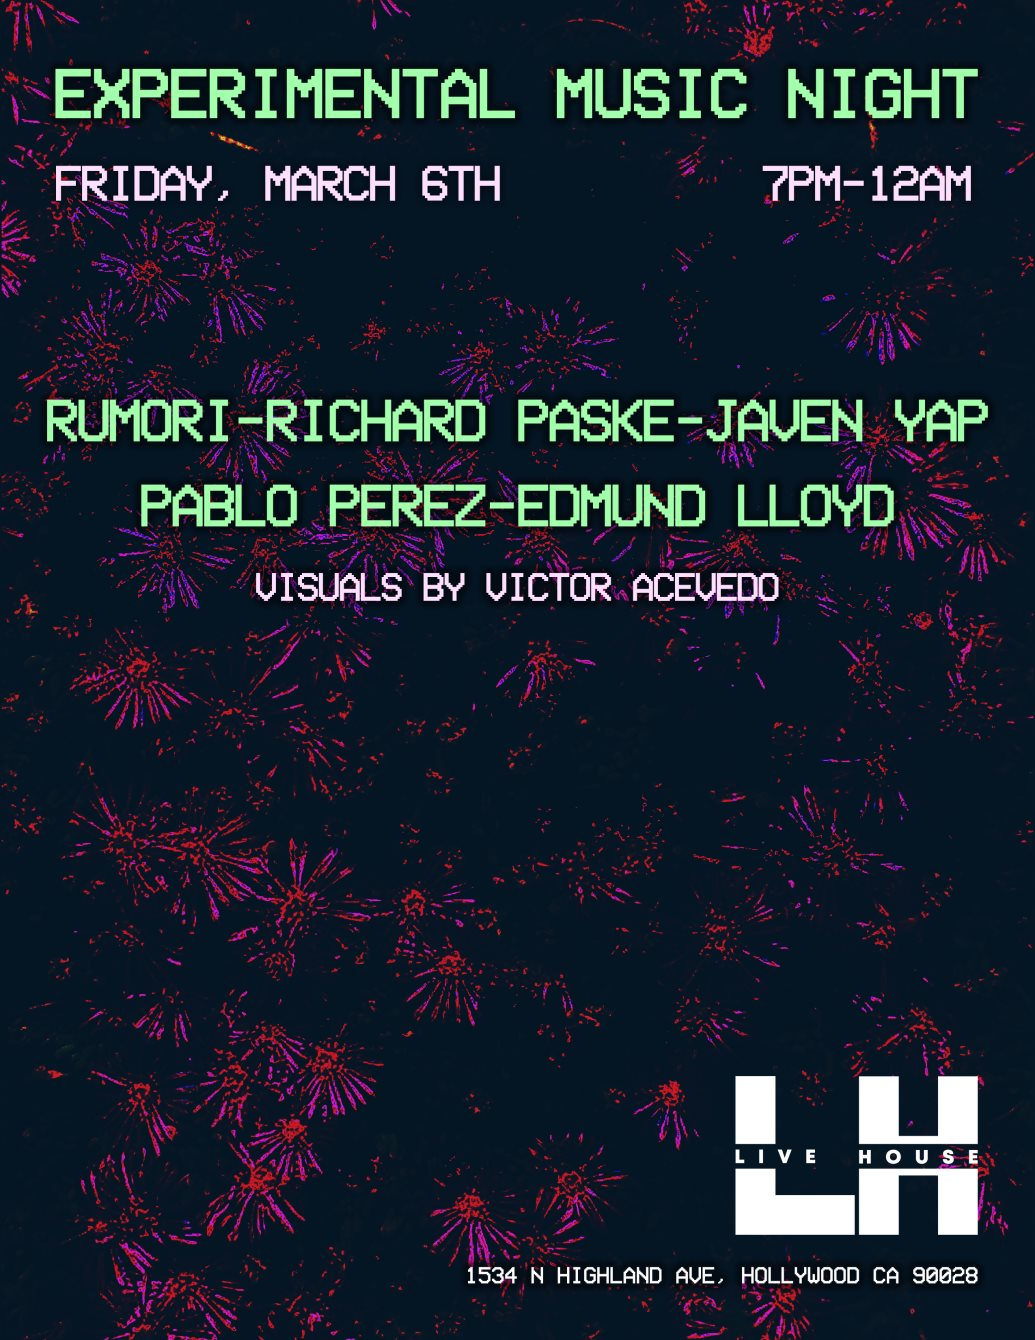 Ra Experimental Music Night At Live House Hollywood Los Angeles